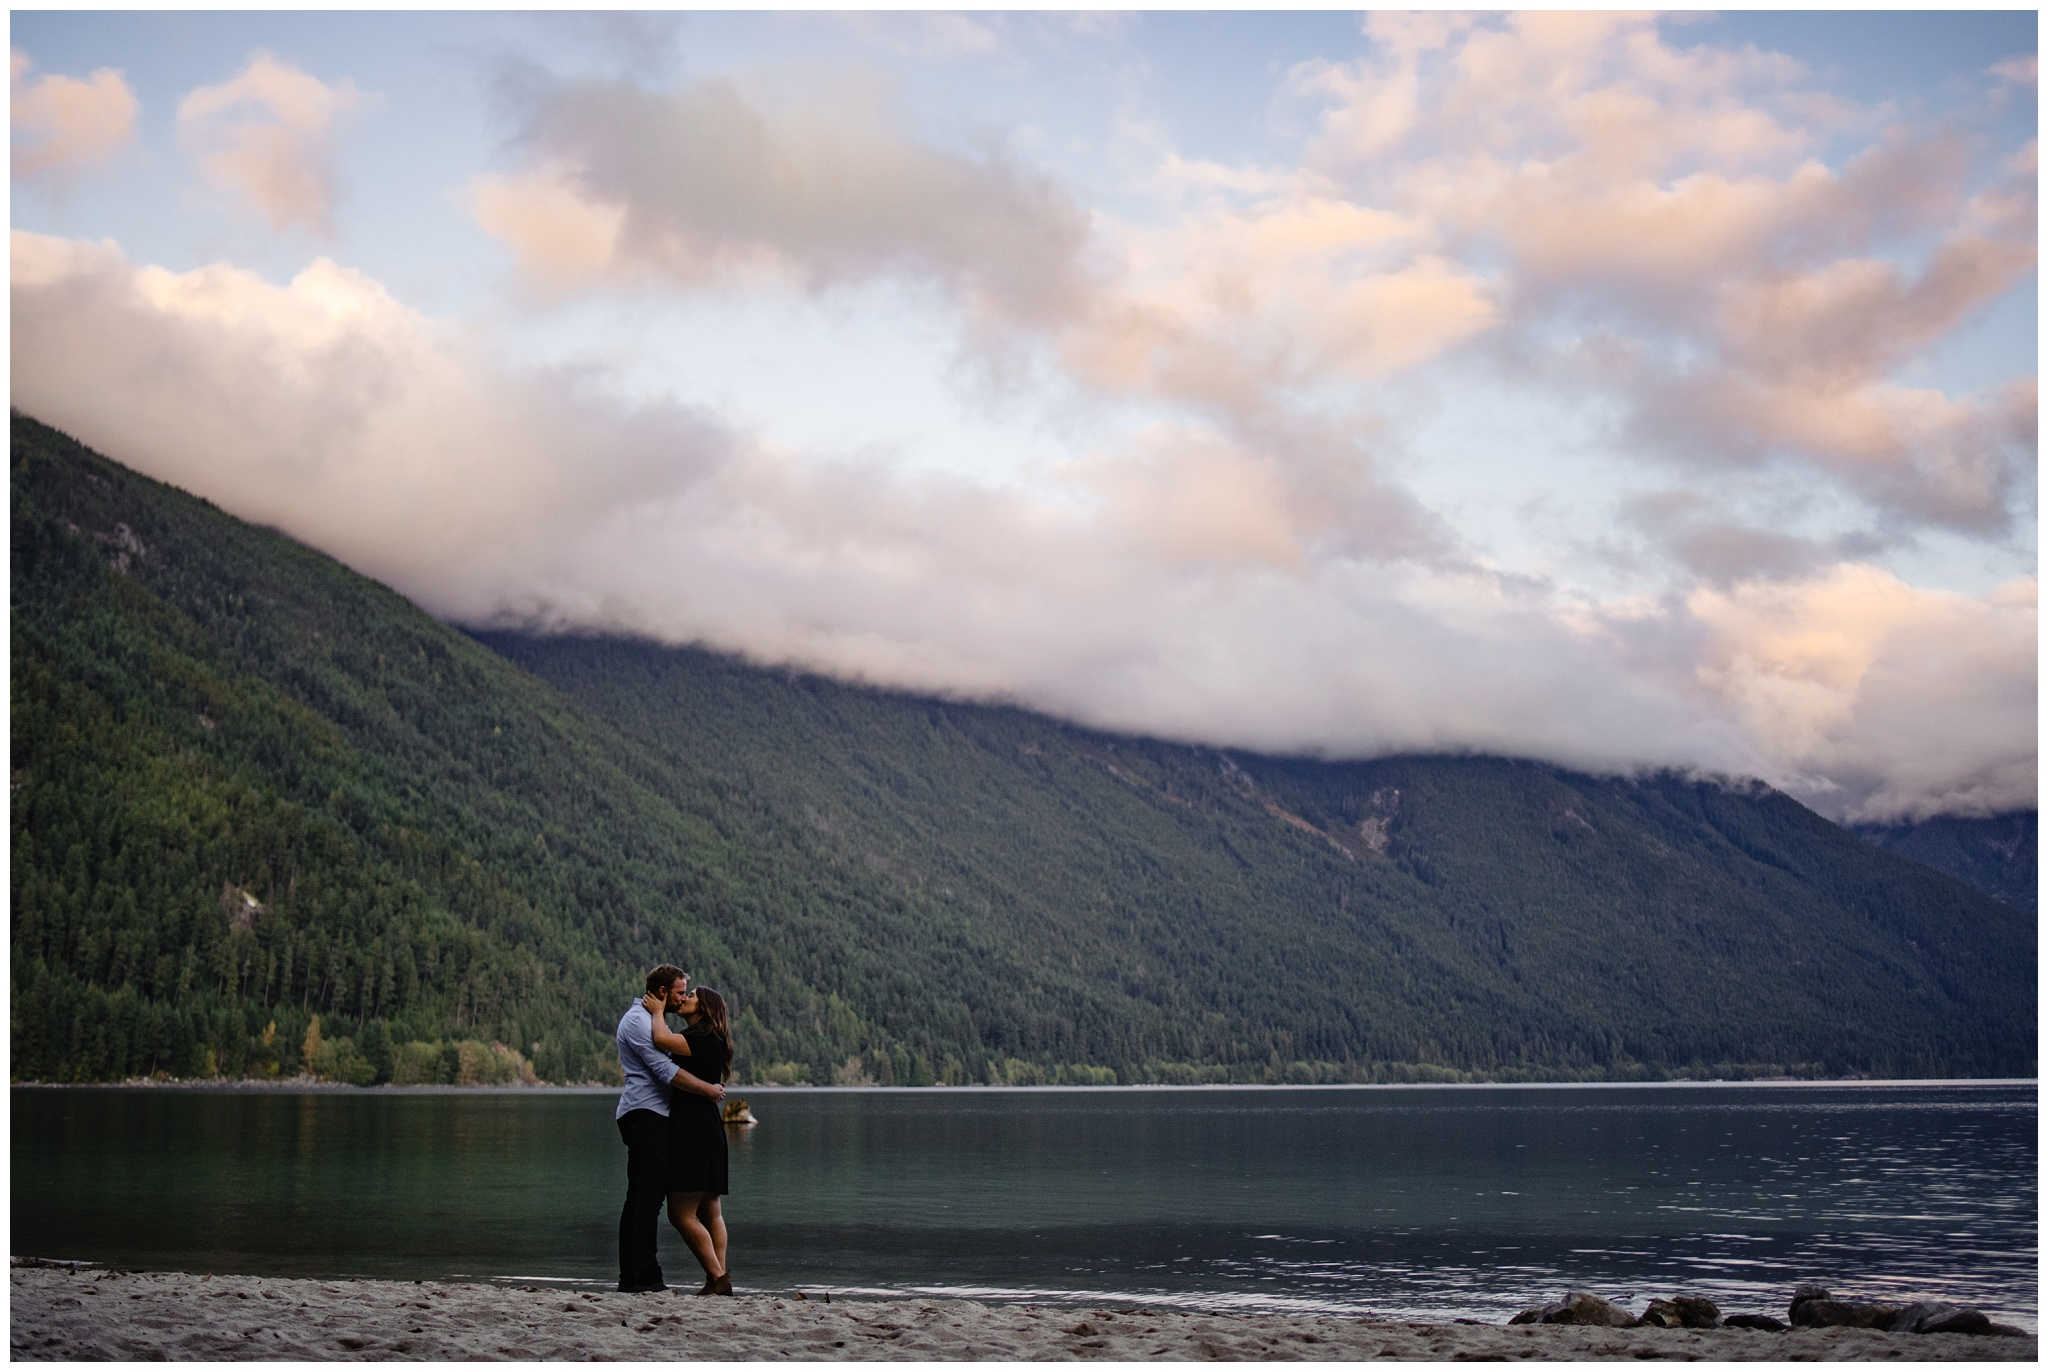 Chilliwack Lake Fall Engagement Photo Inspiration Poses Chilliwack Engagement Photographer_0018.jpg